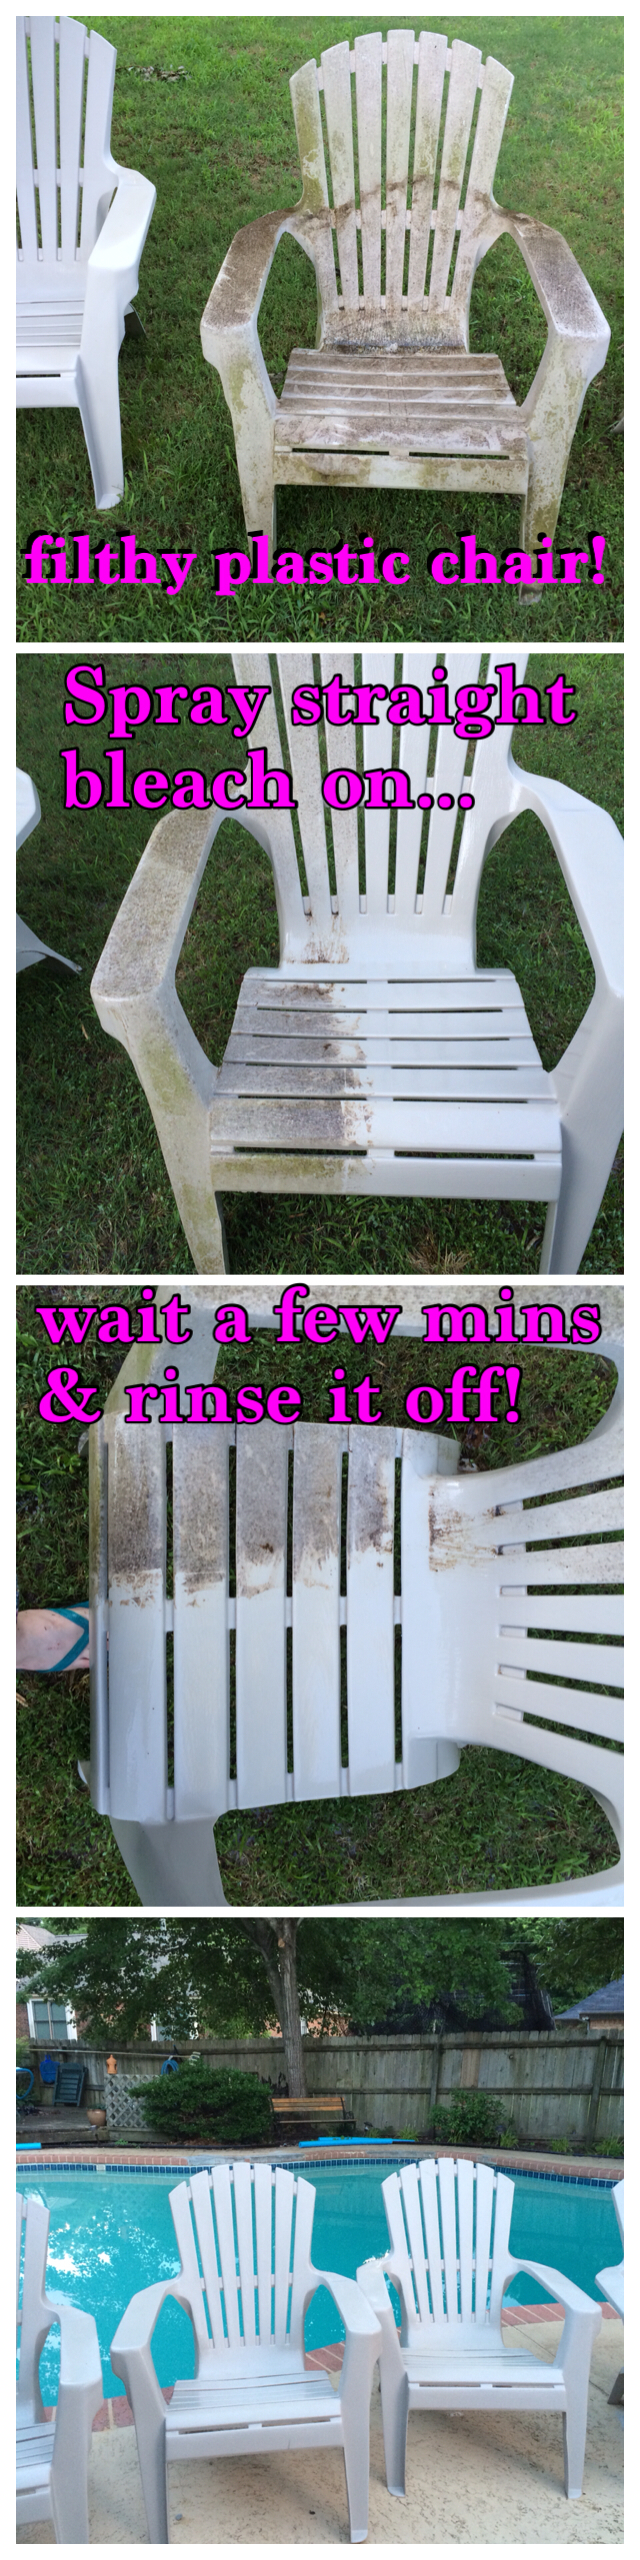 Cleaning Mildew Outdoor Gunk Off Plastic Outdoor Furniture Plastic Outdoor Furniture Outdoor Furniture House Mold